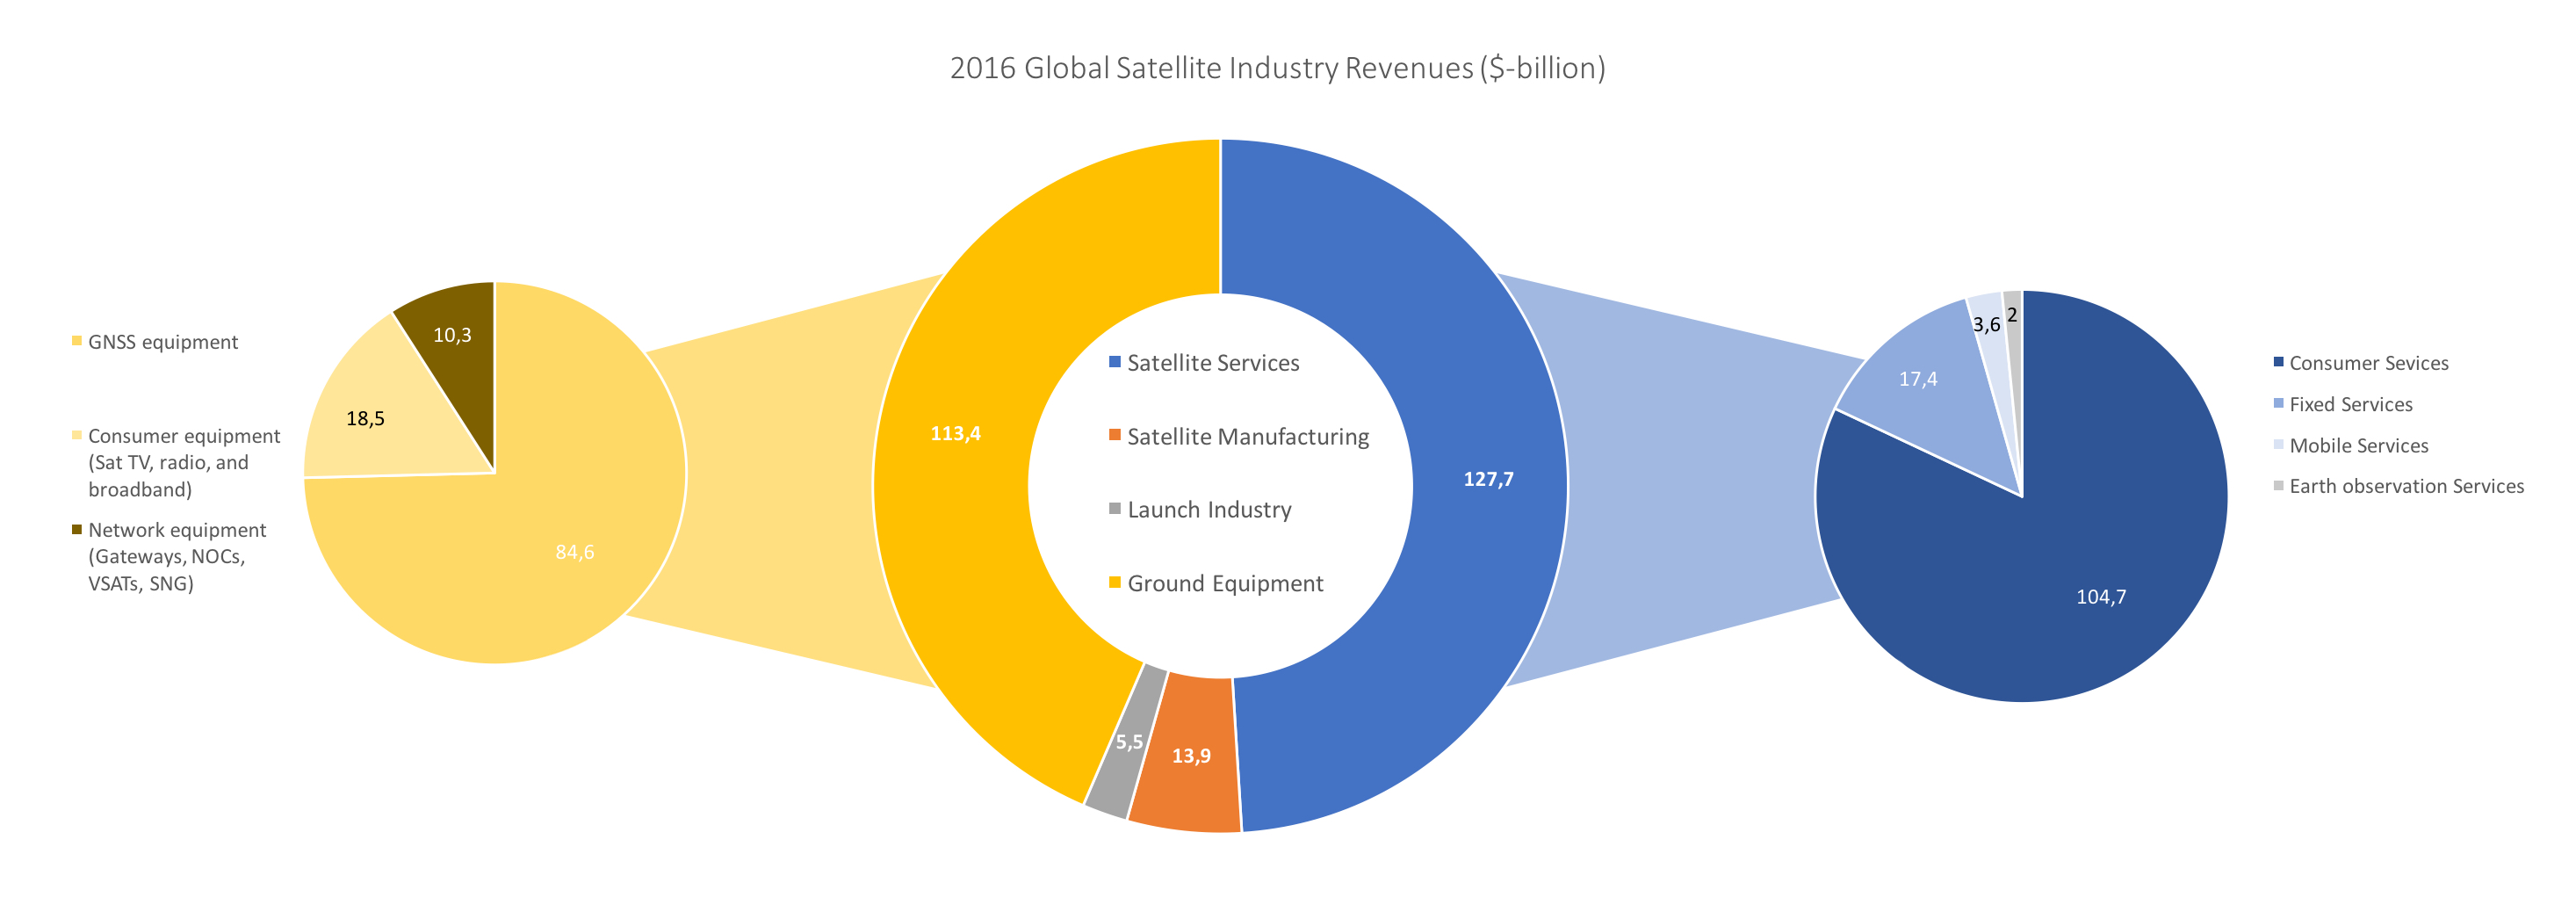 Satellite industry breakdown according to revenue ($-billion), with further detail of the ground equipment (right) and service (left) segments (December 2016). (Information: SIA/Bryce)